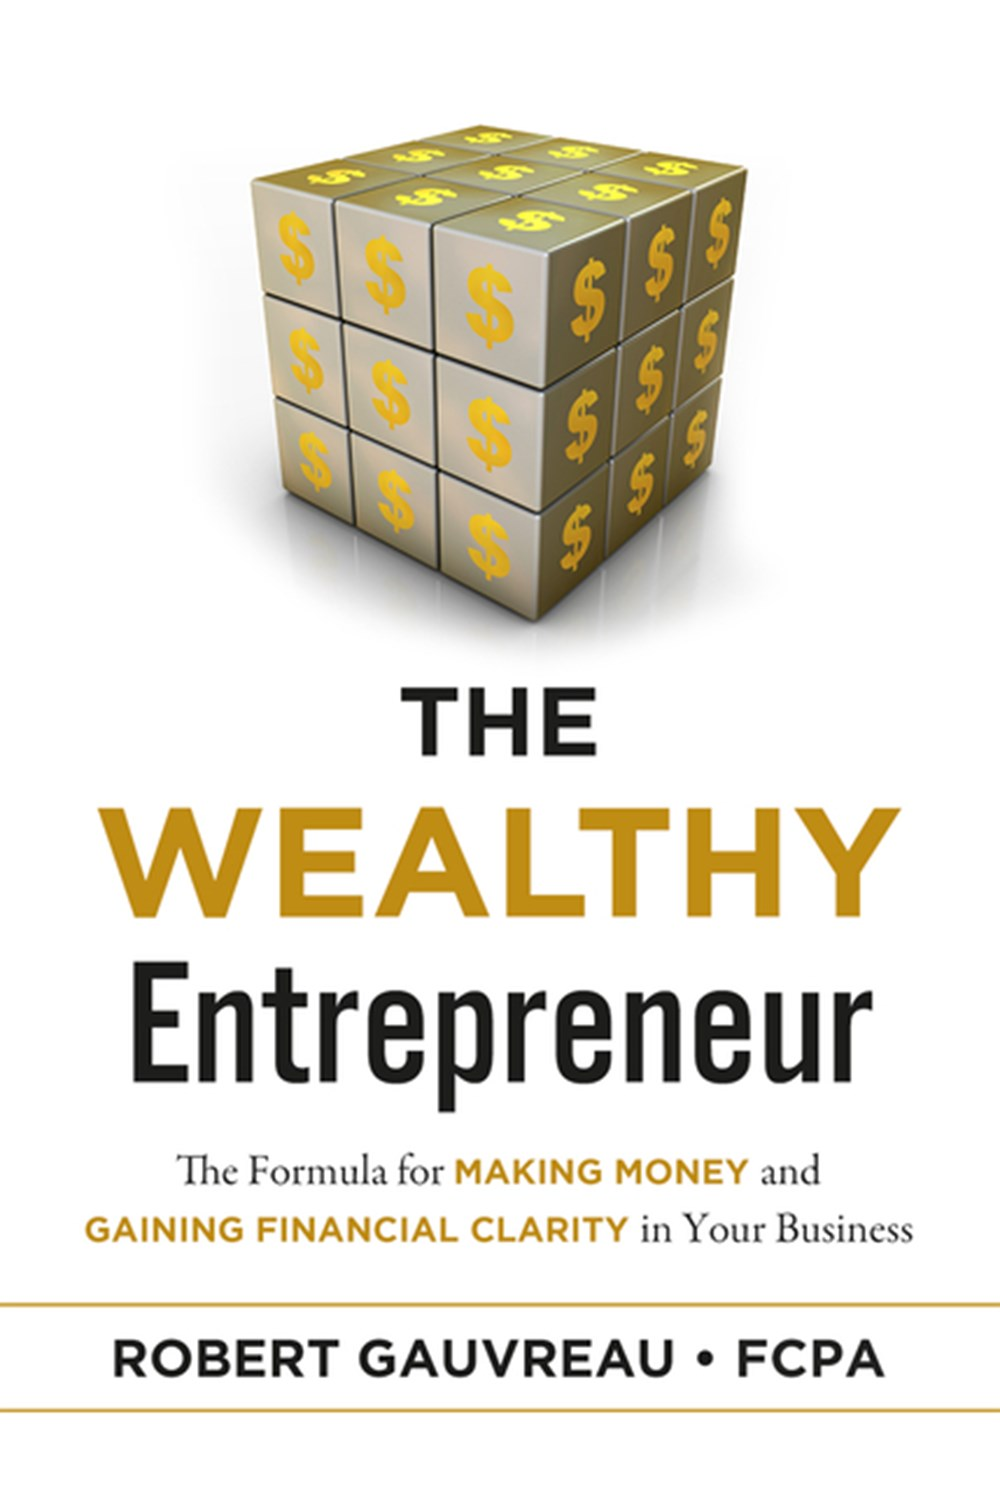 Wealthy Entrepreneur The Formula for Making Money and Gaining Financial Clarity in Your Business